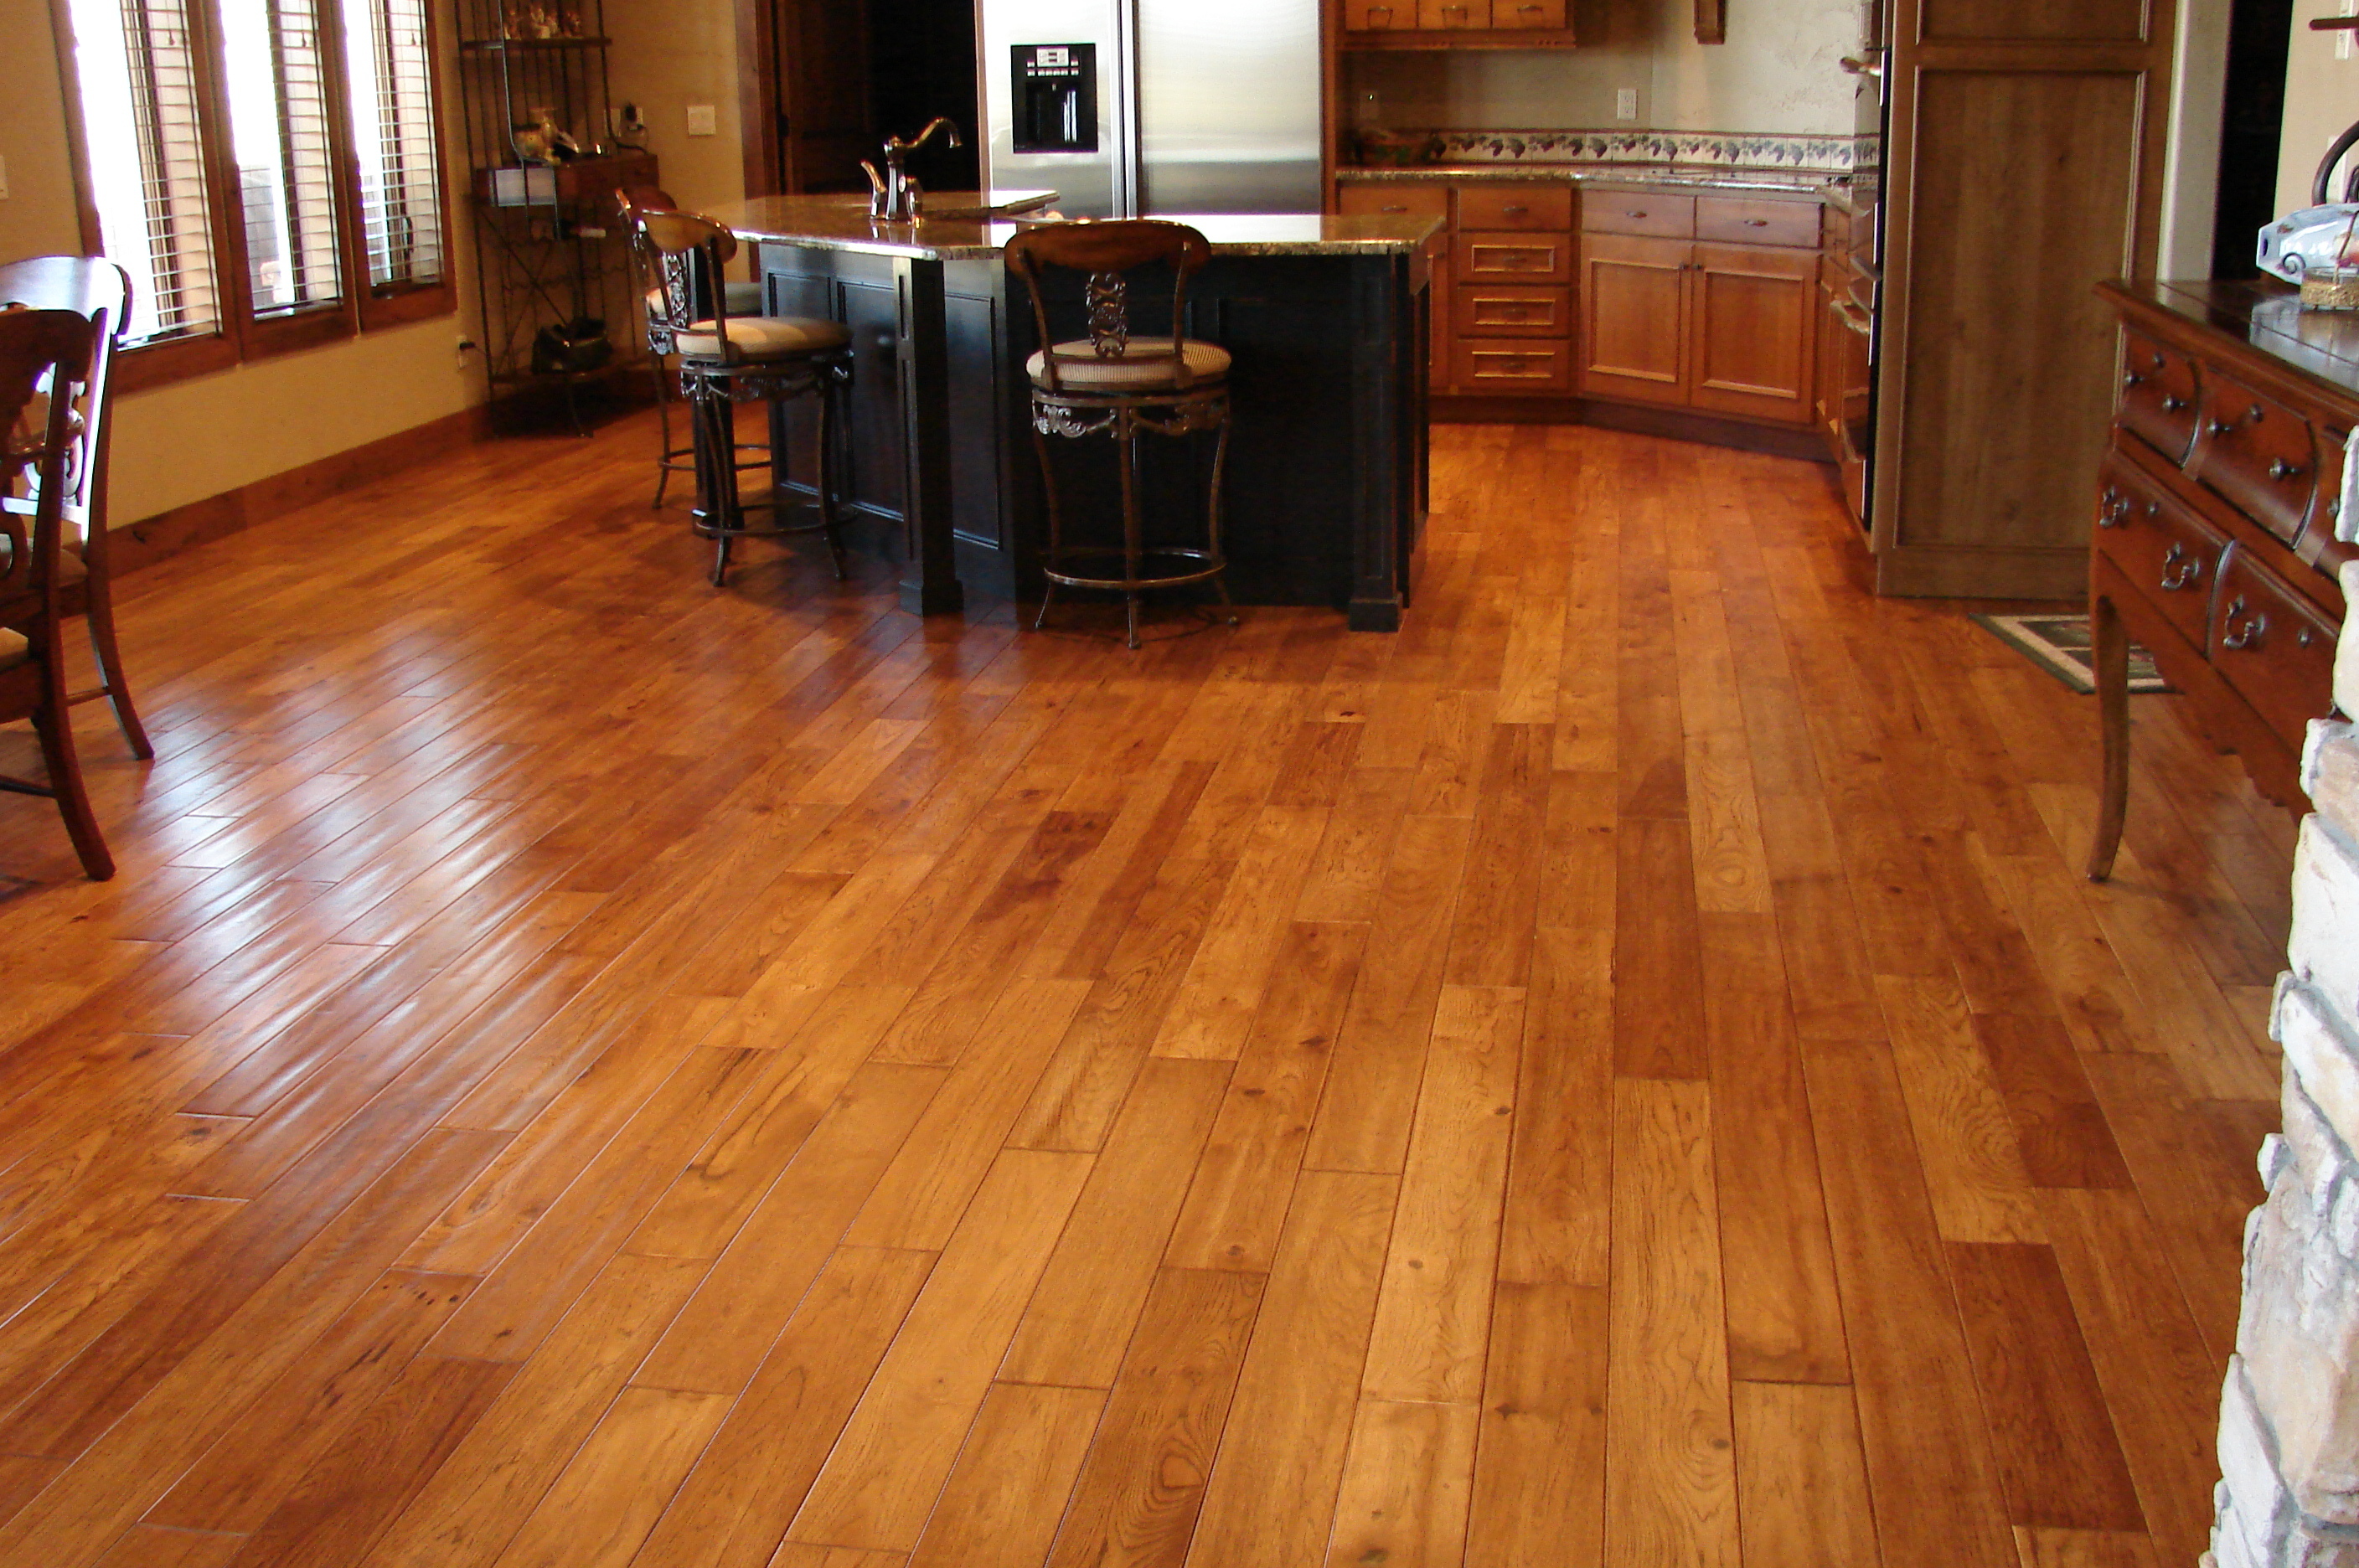 Wood Look Floor Housome Most Beautiful